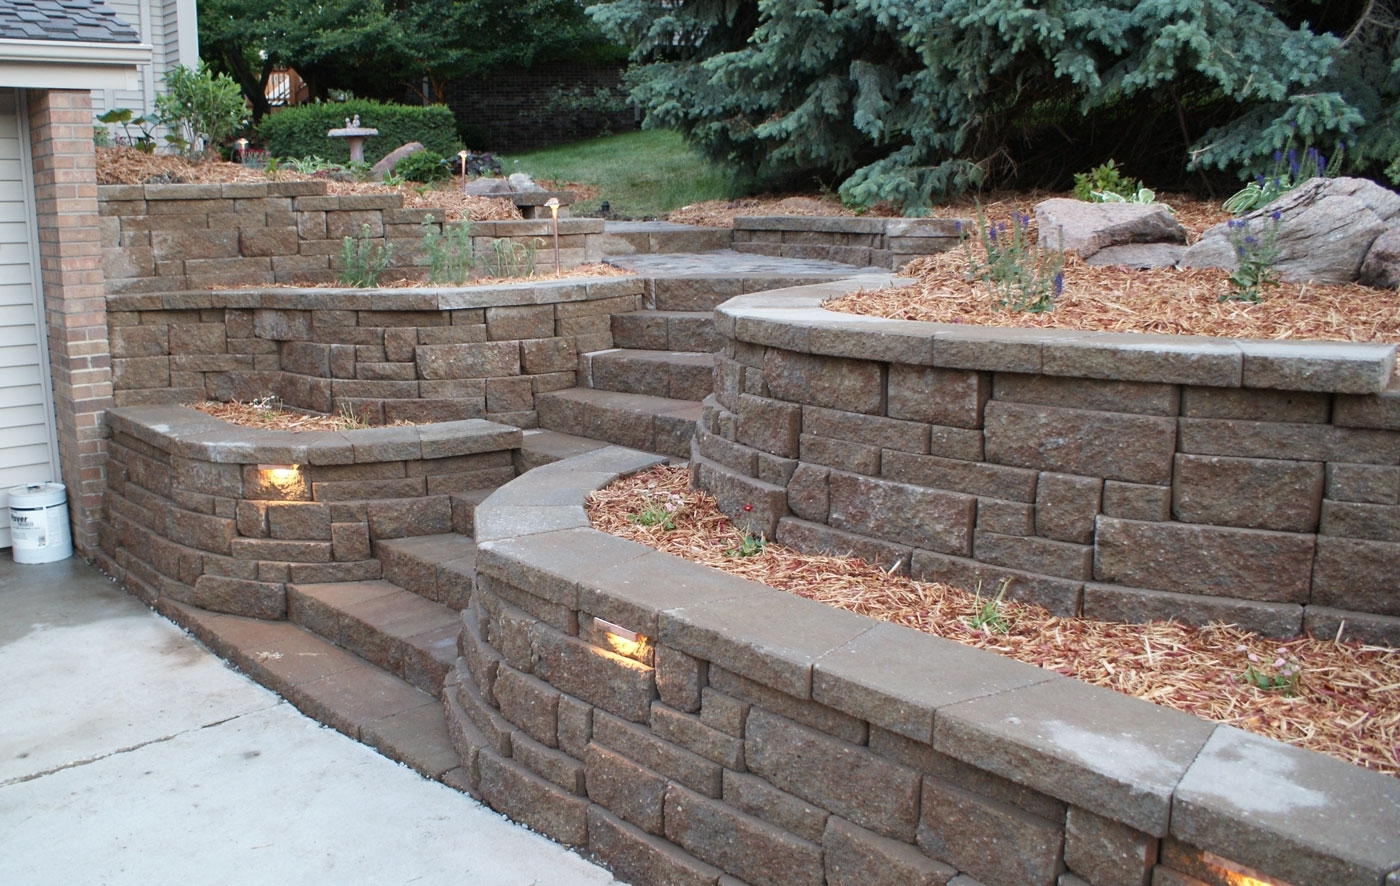 Expocrete 8 In X 4 In Stackstone Coping Basic Retaining Wall Block With Outdoor Block Wall Lighting (#5 of 15)